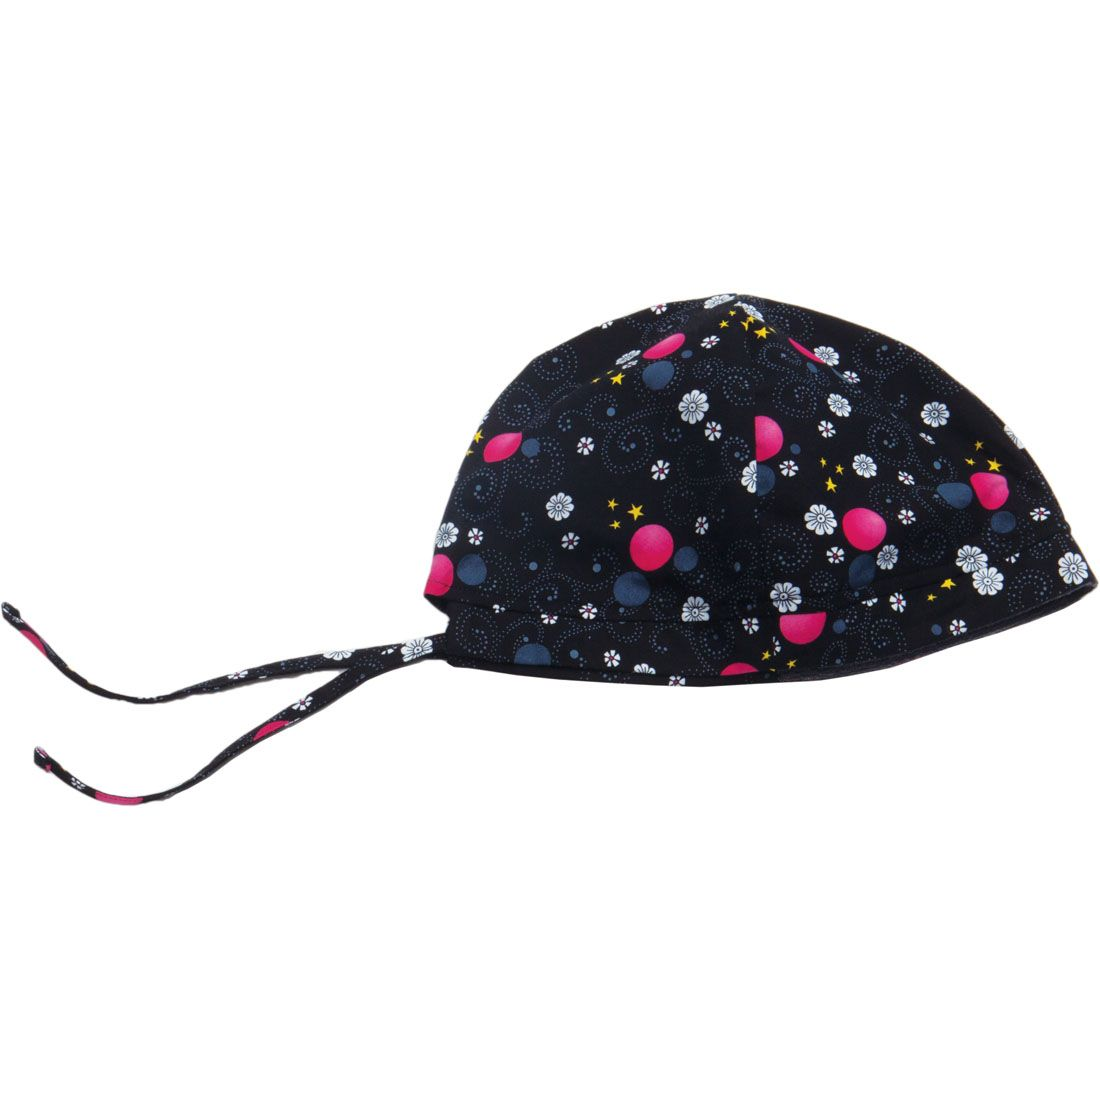 e03805ea3 A one size fits all scrub hat with a soft inside terry cloth band ...